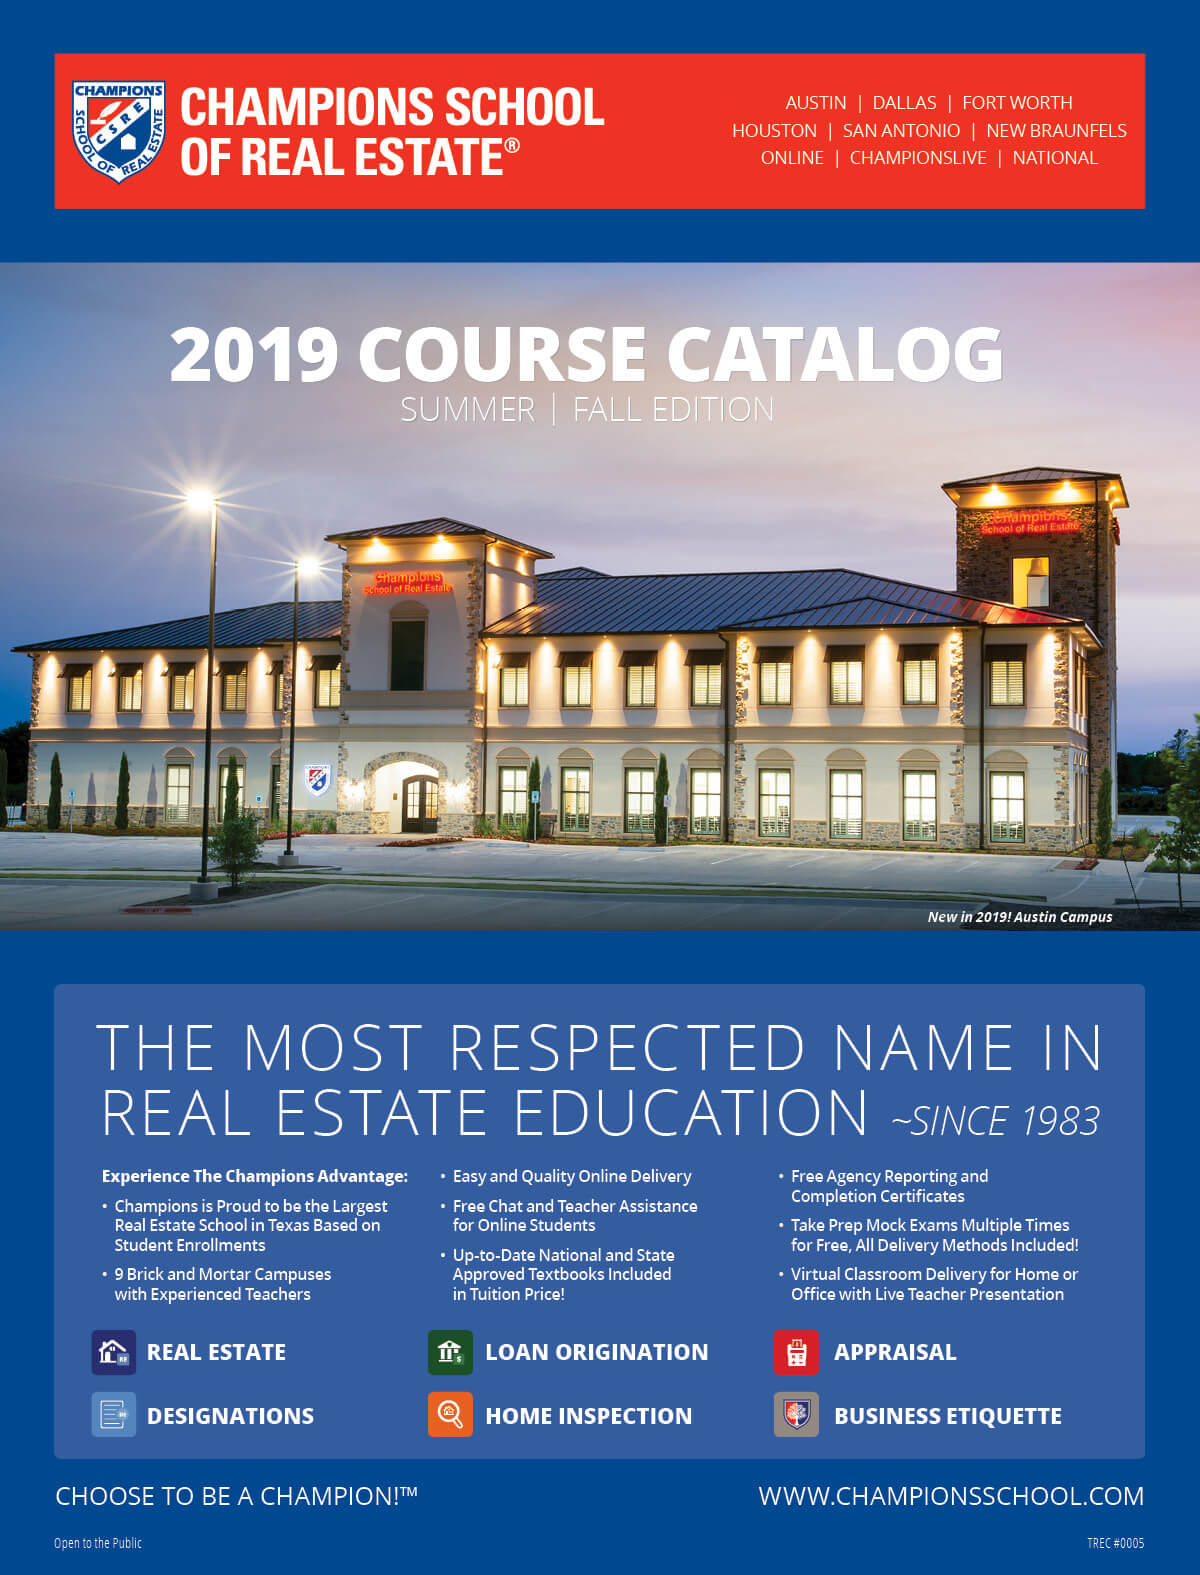 Champions School of Real Estate 2019 Course Catalog Cover